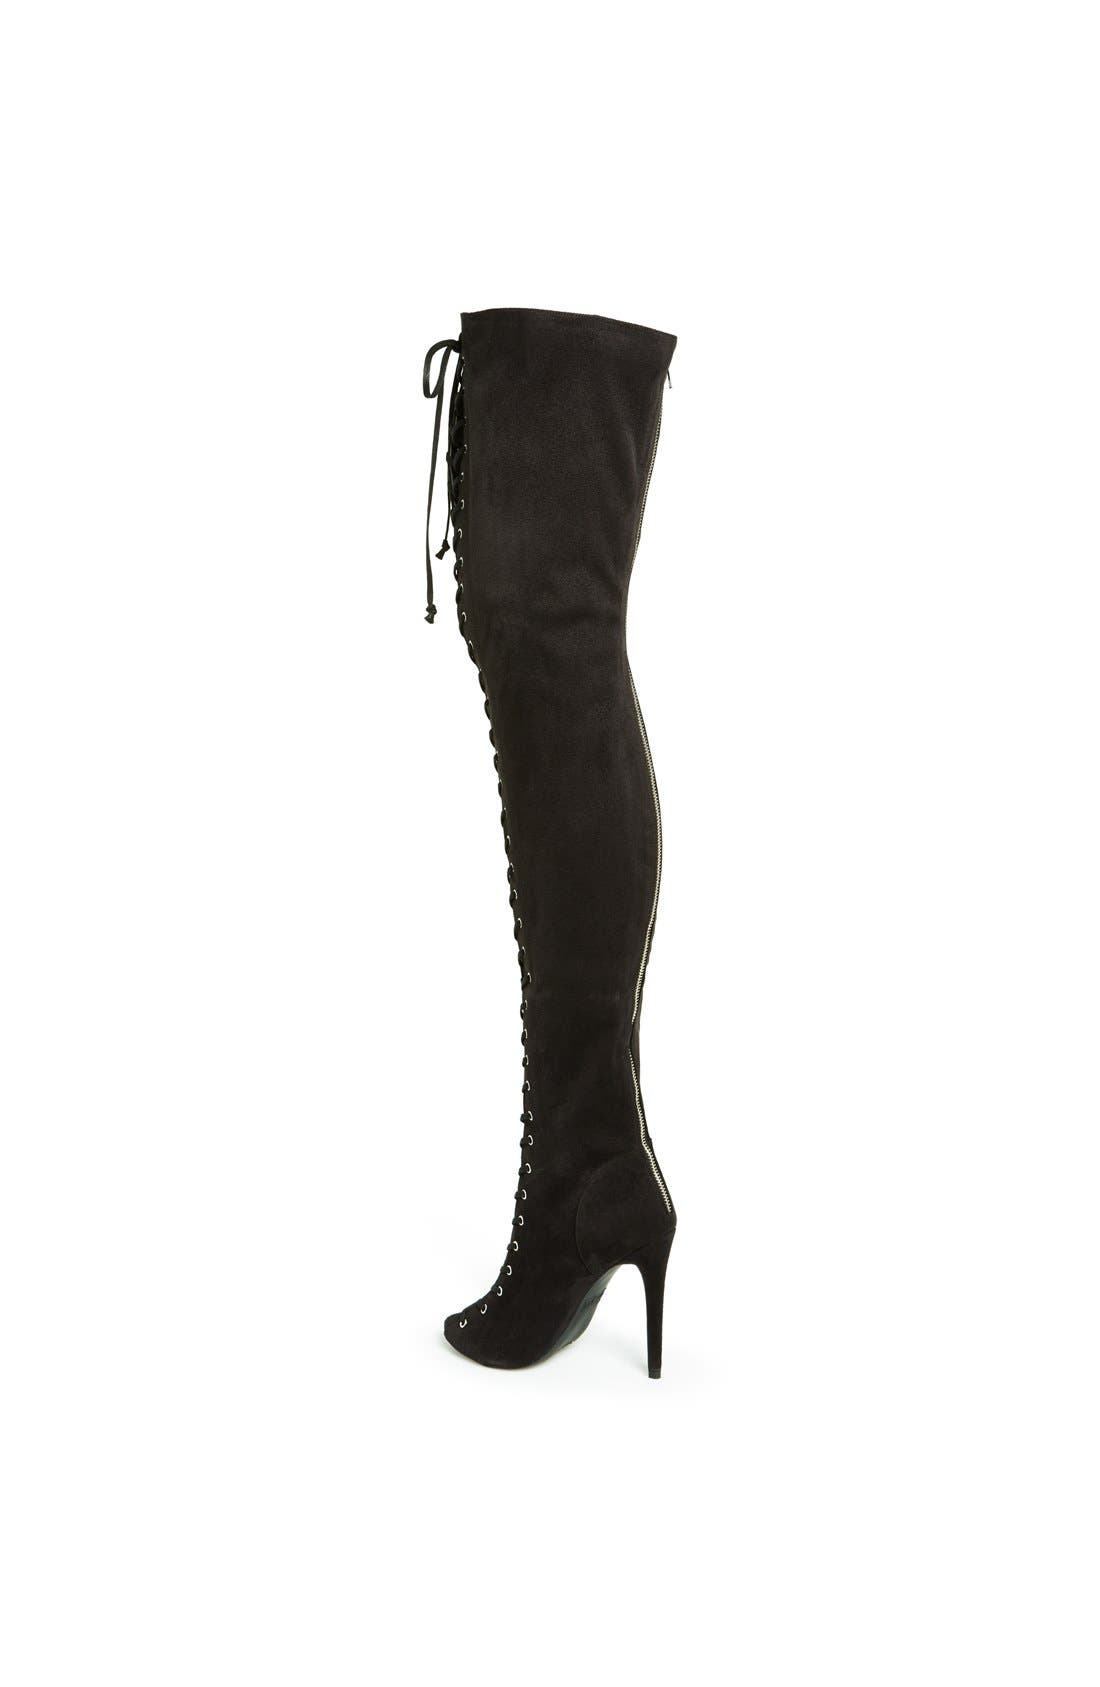 'Piarry' Lace-Up Thigh-High Boot,                             Alternate thumbnail 2, color,                             001